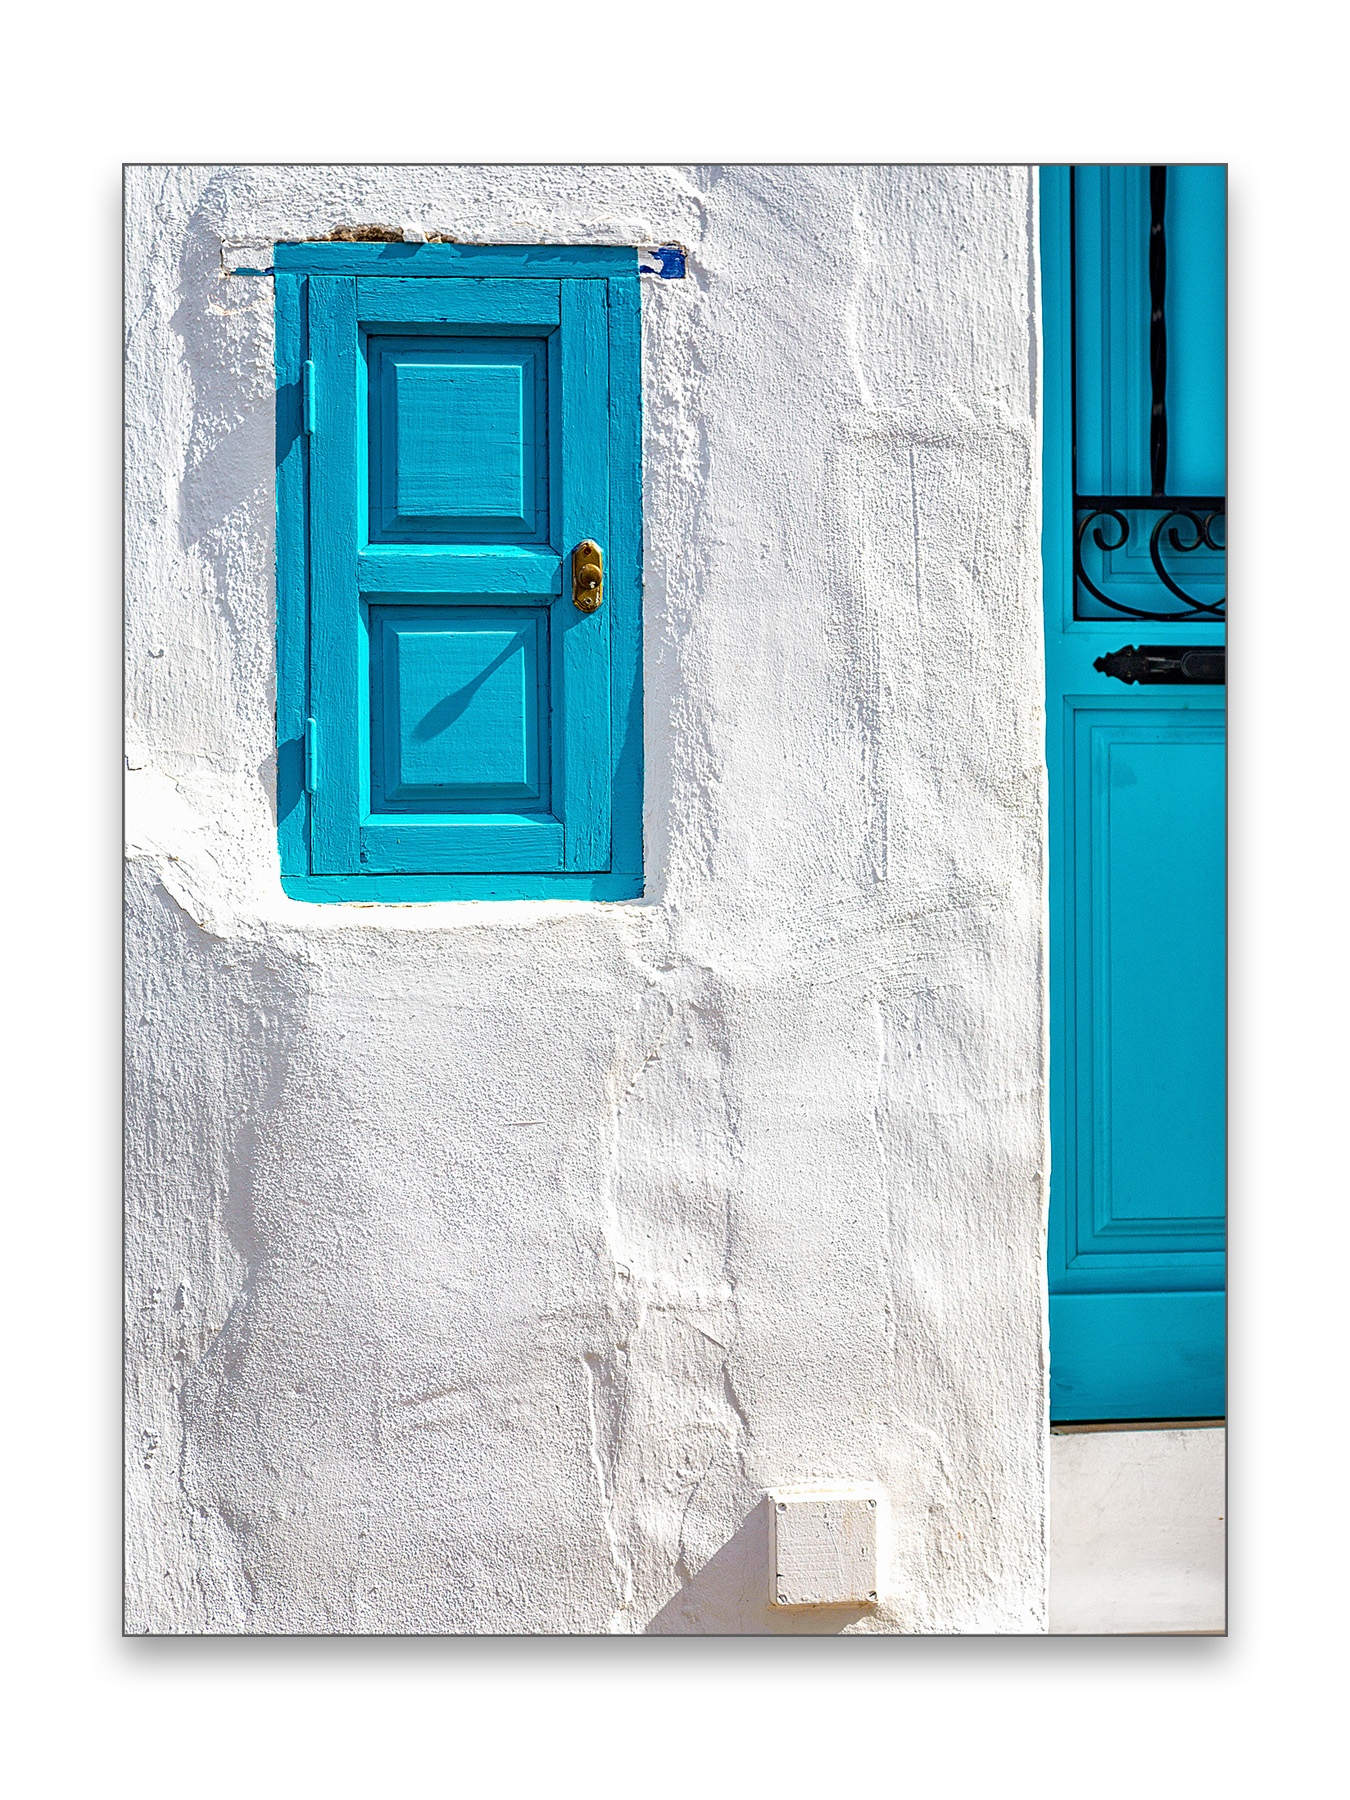 Turquise Door - 30 x 40 cm € 65,-45 x 60 cm € 95,-60 x 90 cm, € 175,-Limited edition of 54 of 5 available